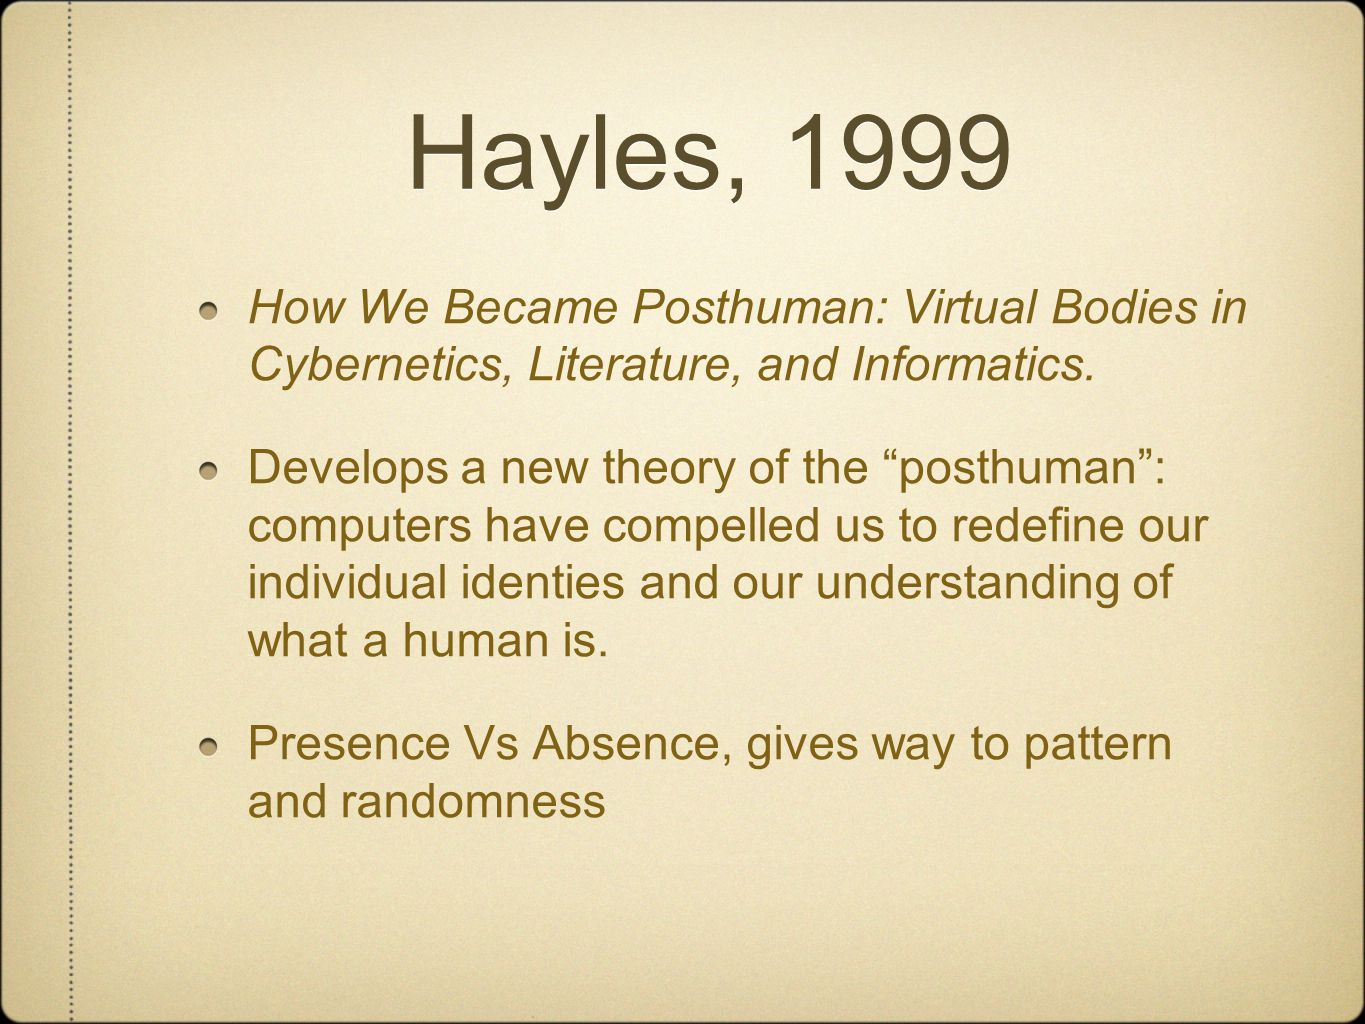 Hayles, 1999 How We Became Posthuman: Virtual Bodies in Cybernetics, Literature, and Informatics.